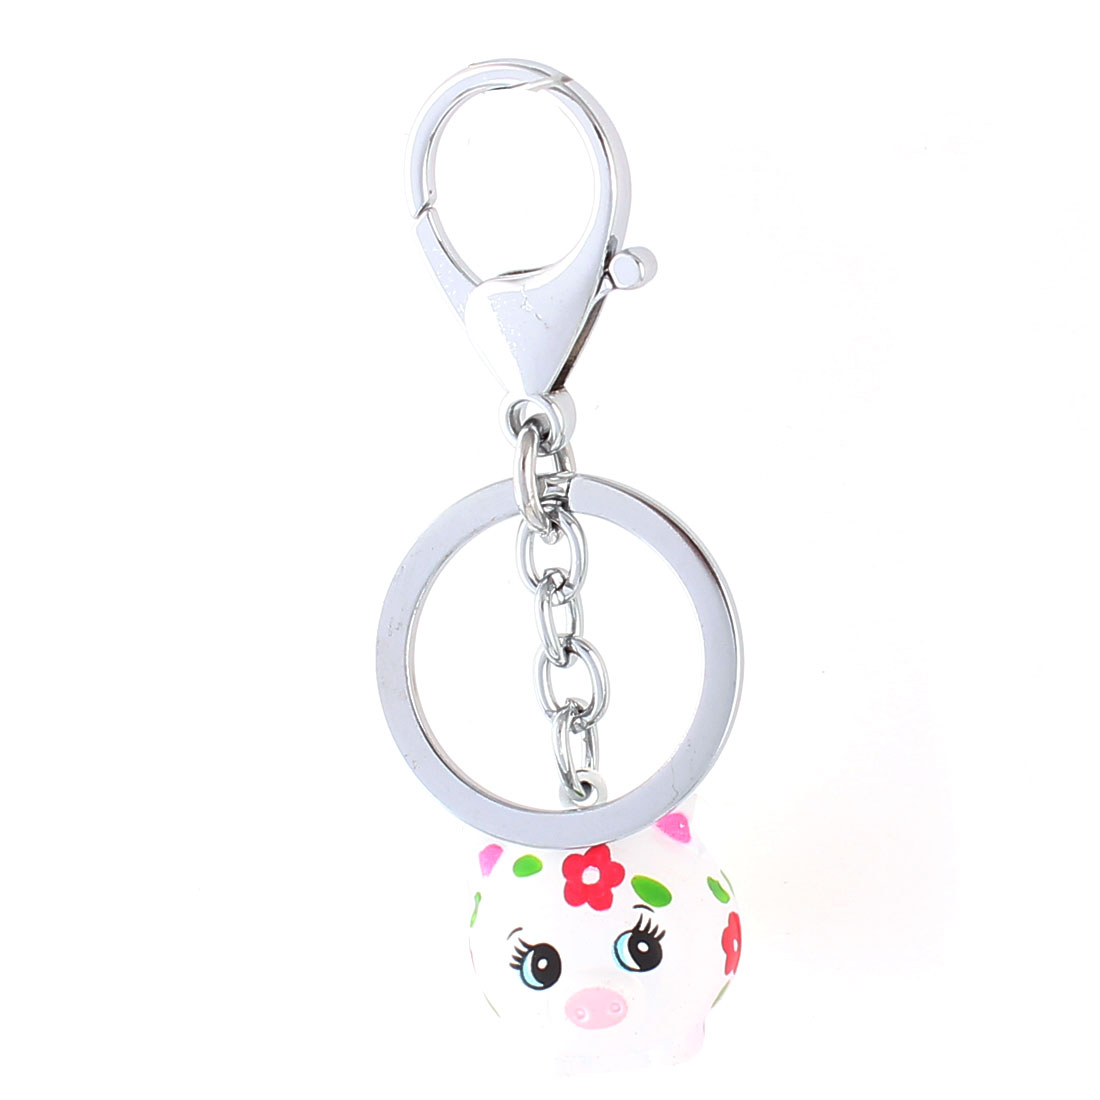 White Dangling Fat Pig Bells Decor Key Ring Keychain Keyring